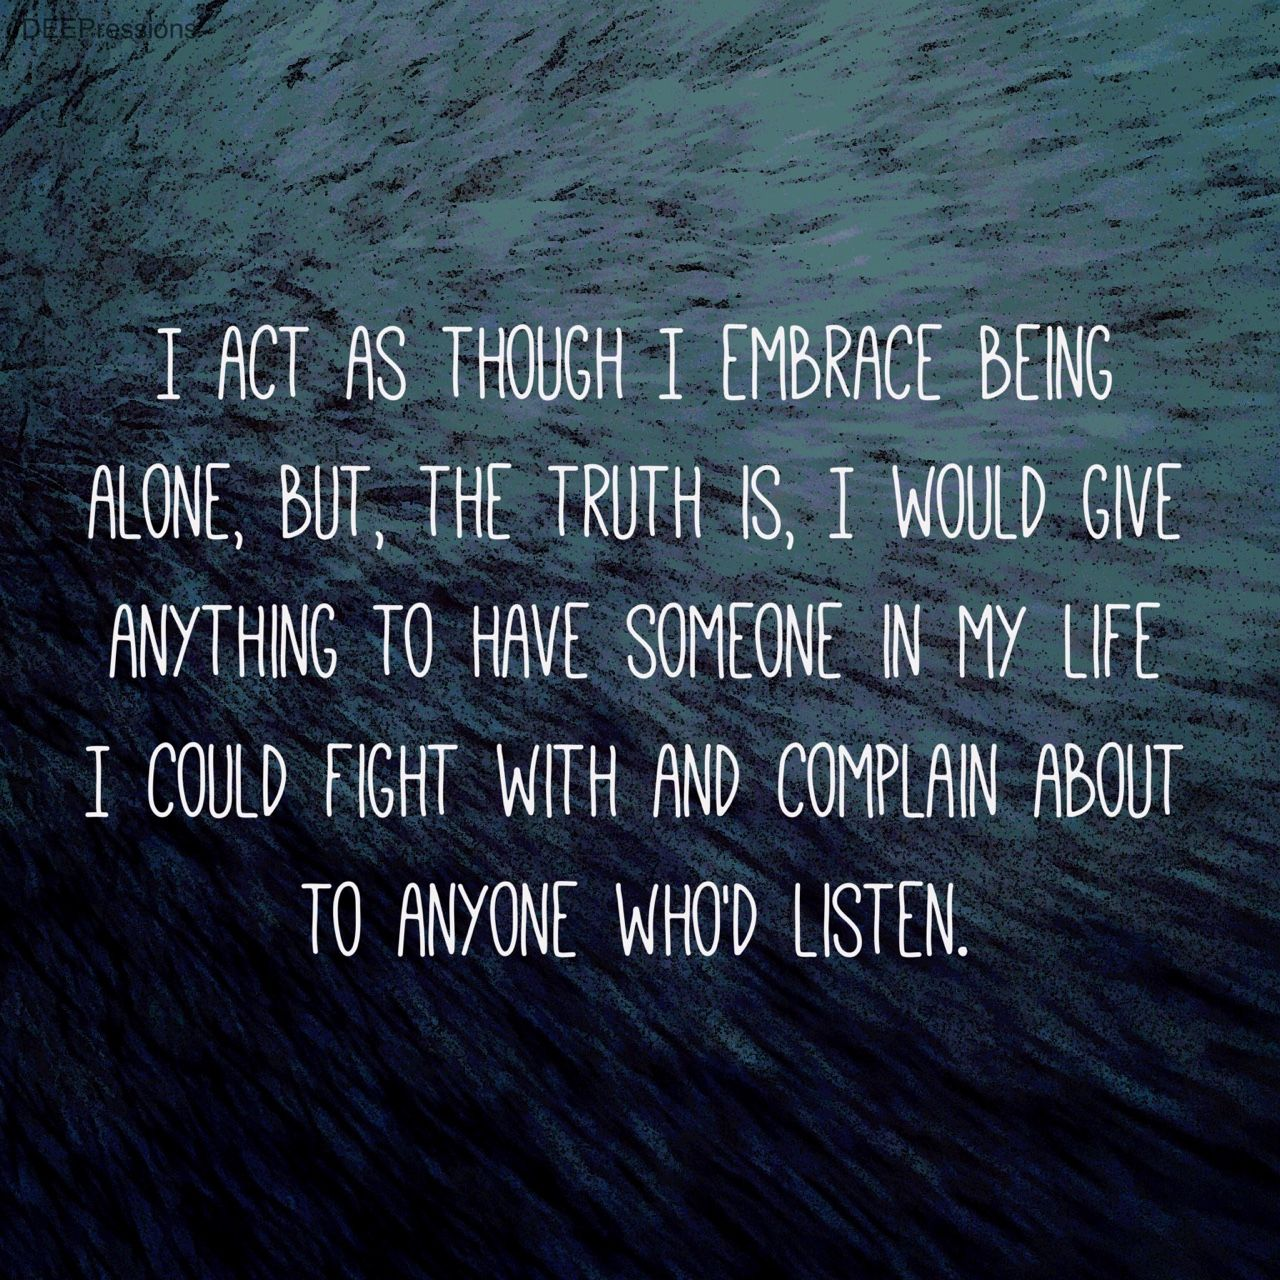 Sad Quotes About Being Alone: Depression Quotes About Being Alone